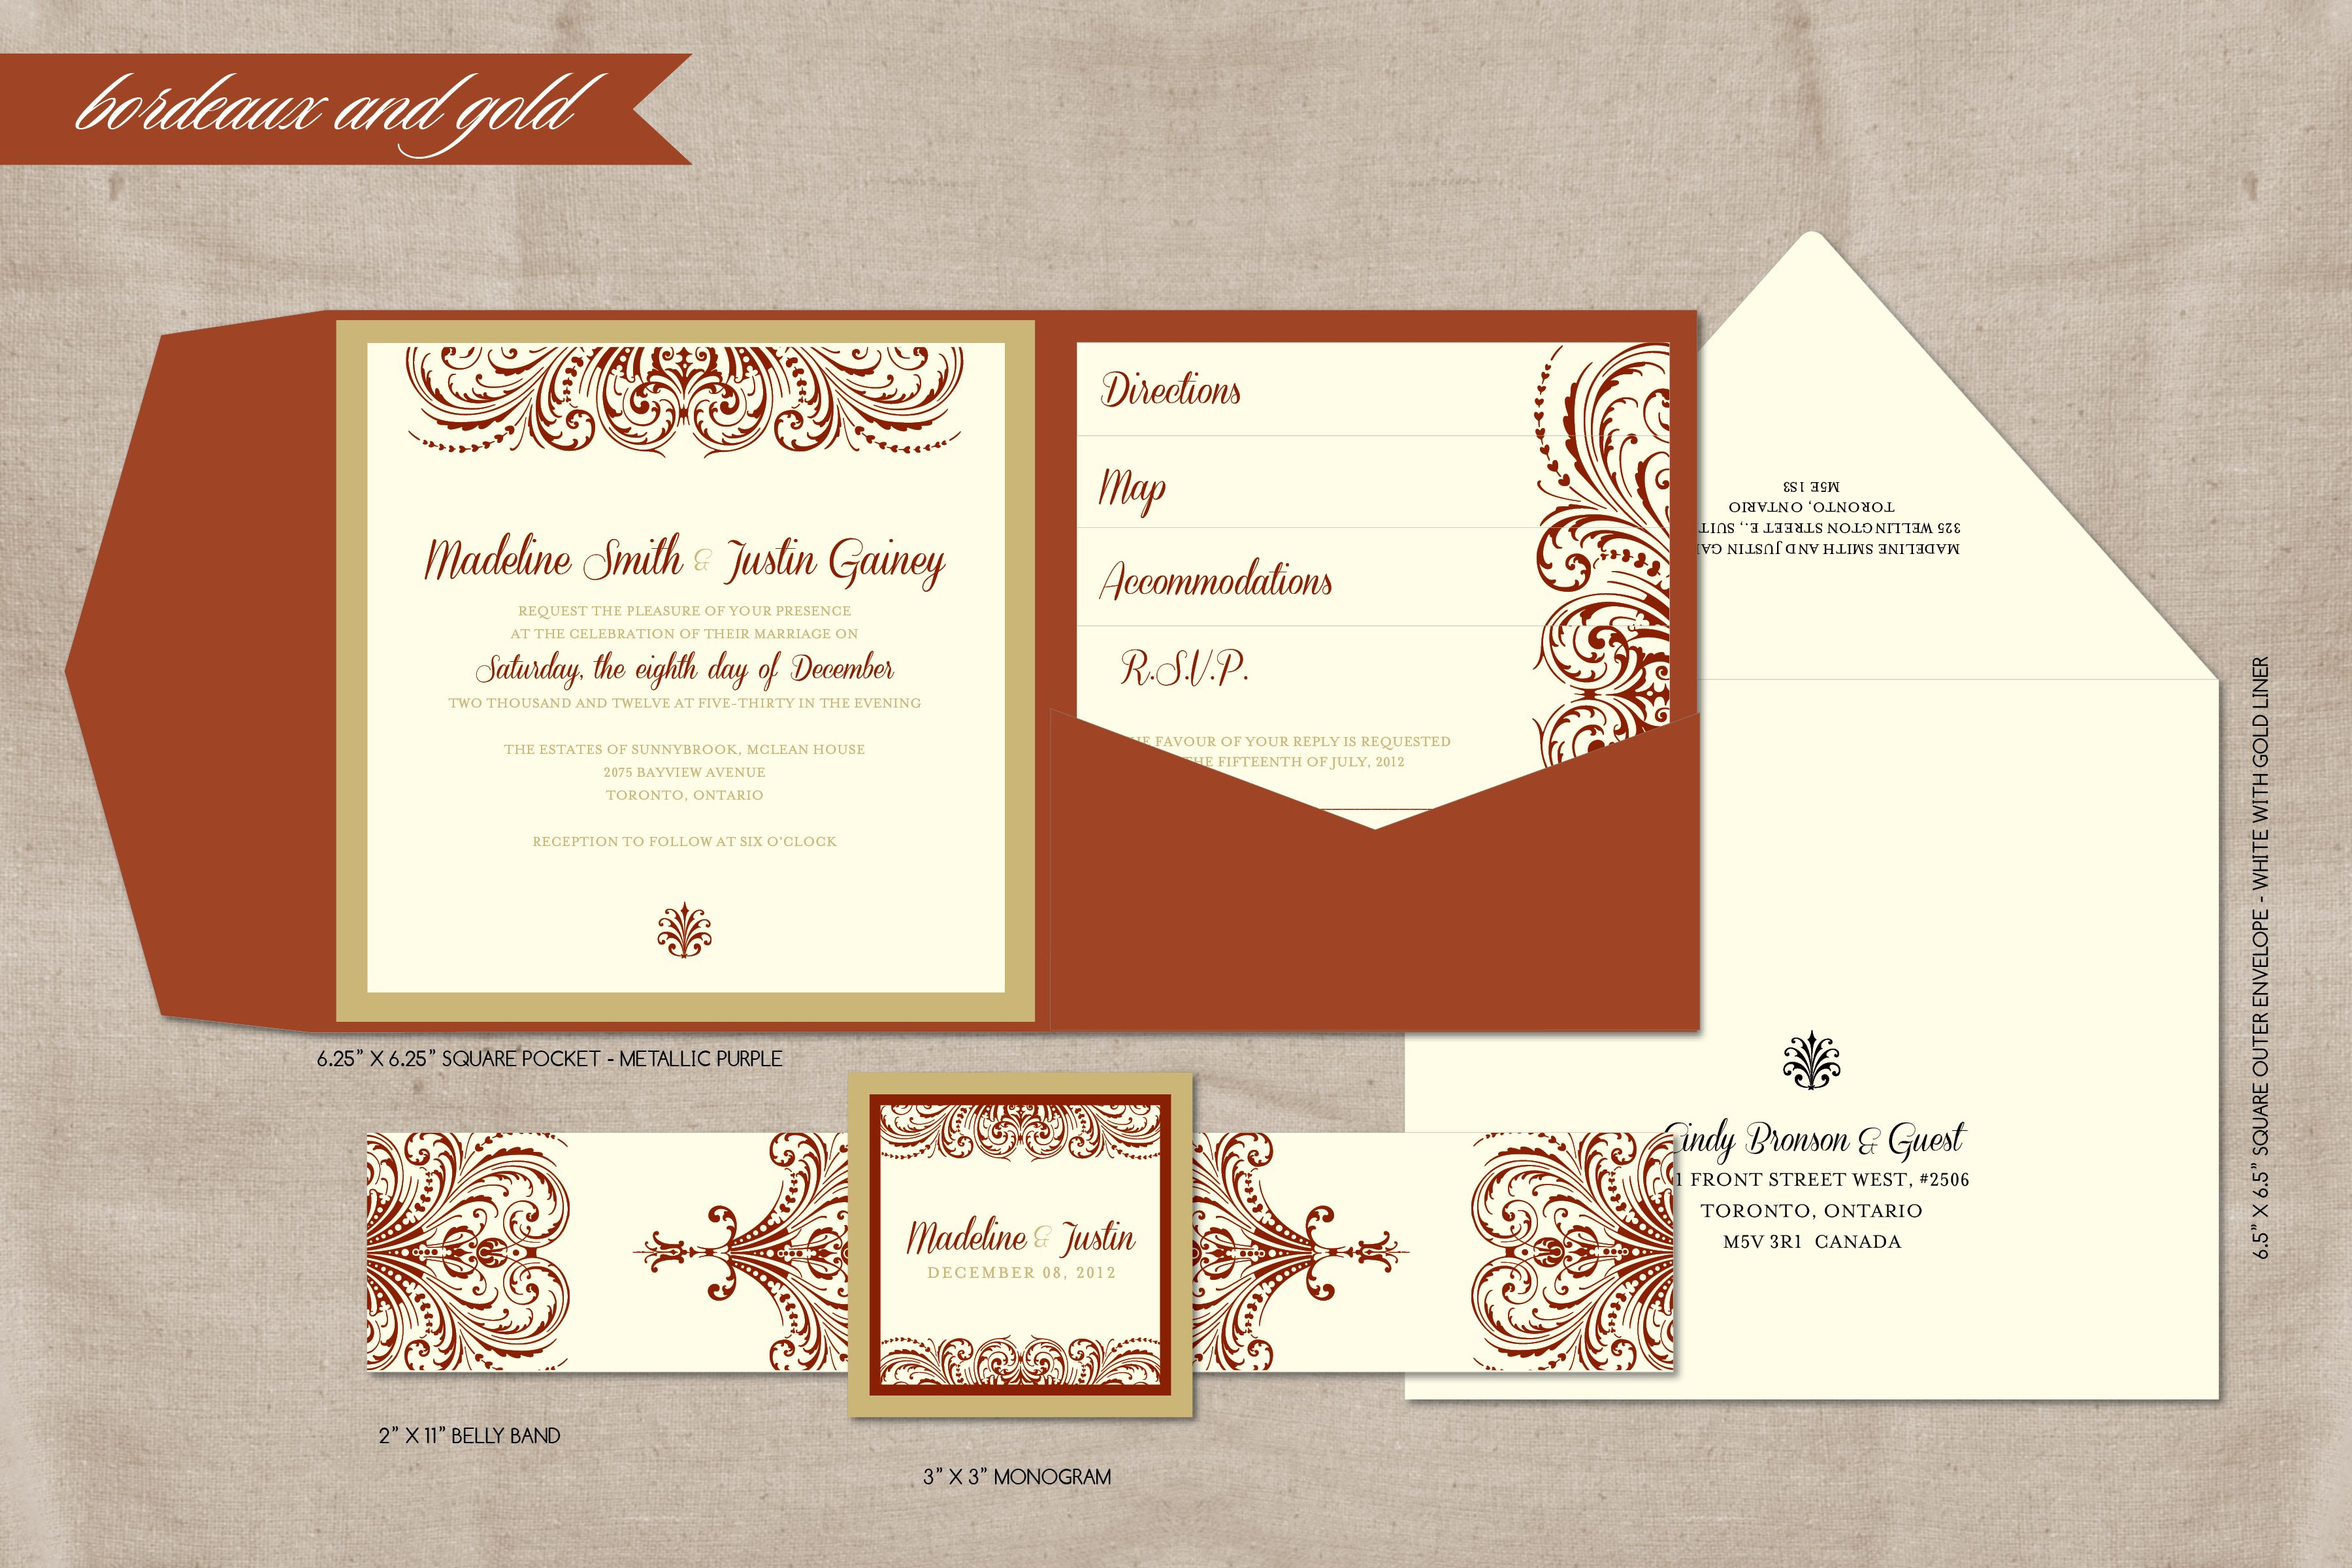 Beautiful bordeaux and gold pocket wedding invitation. | Invitations ...